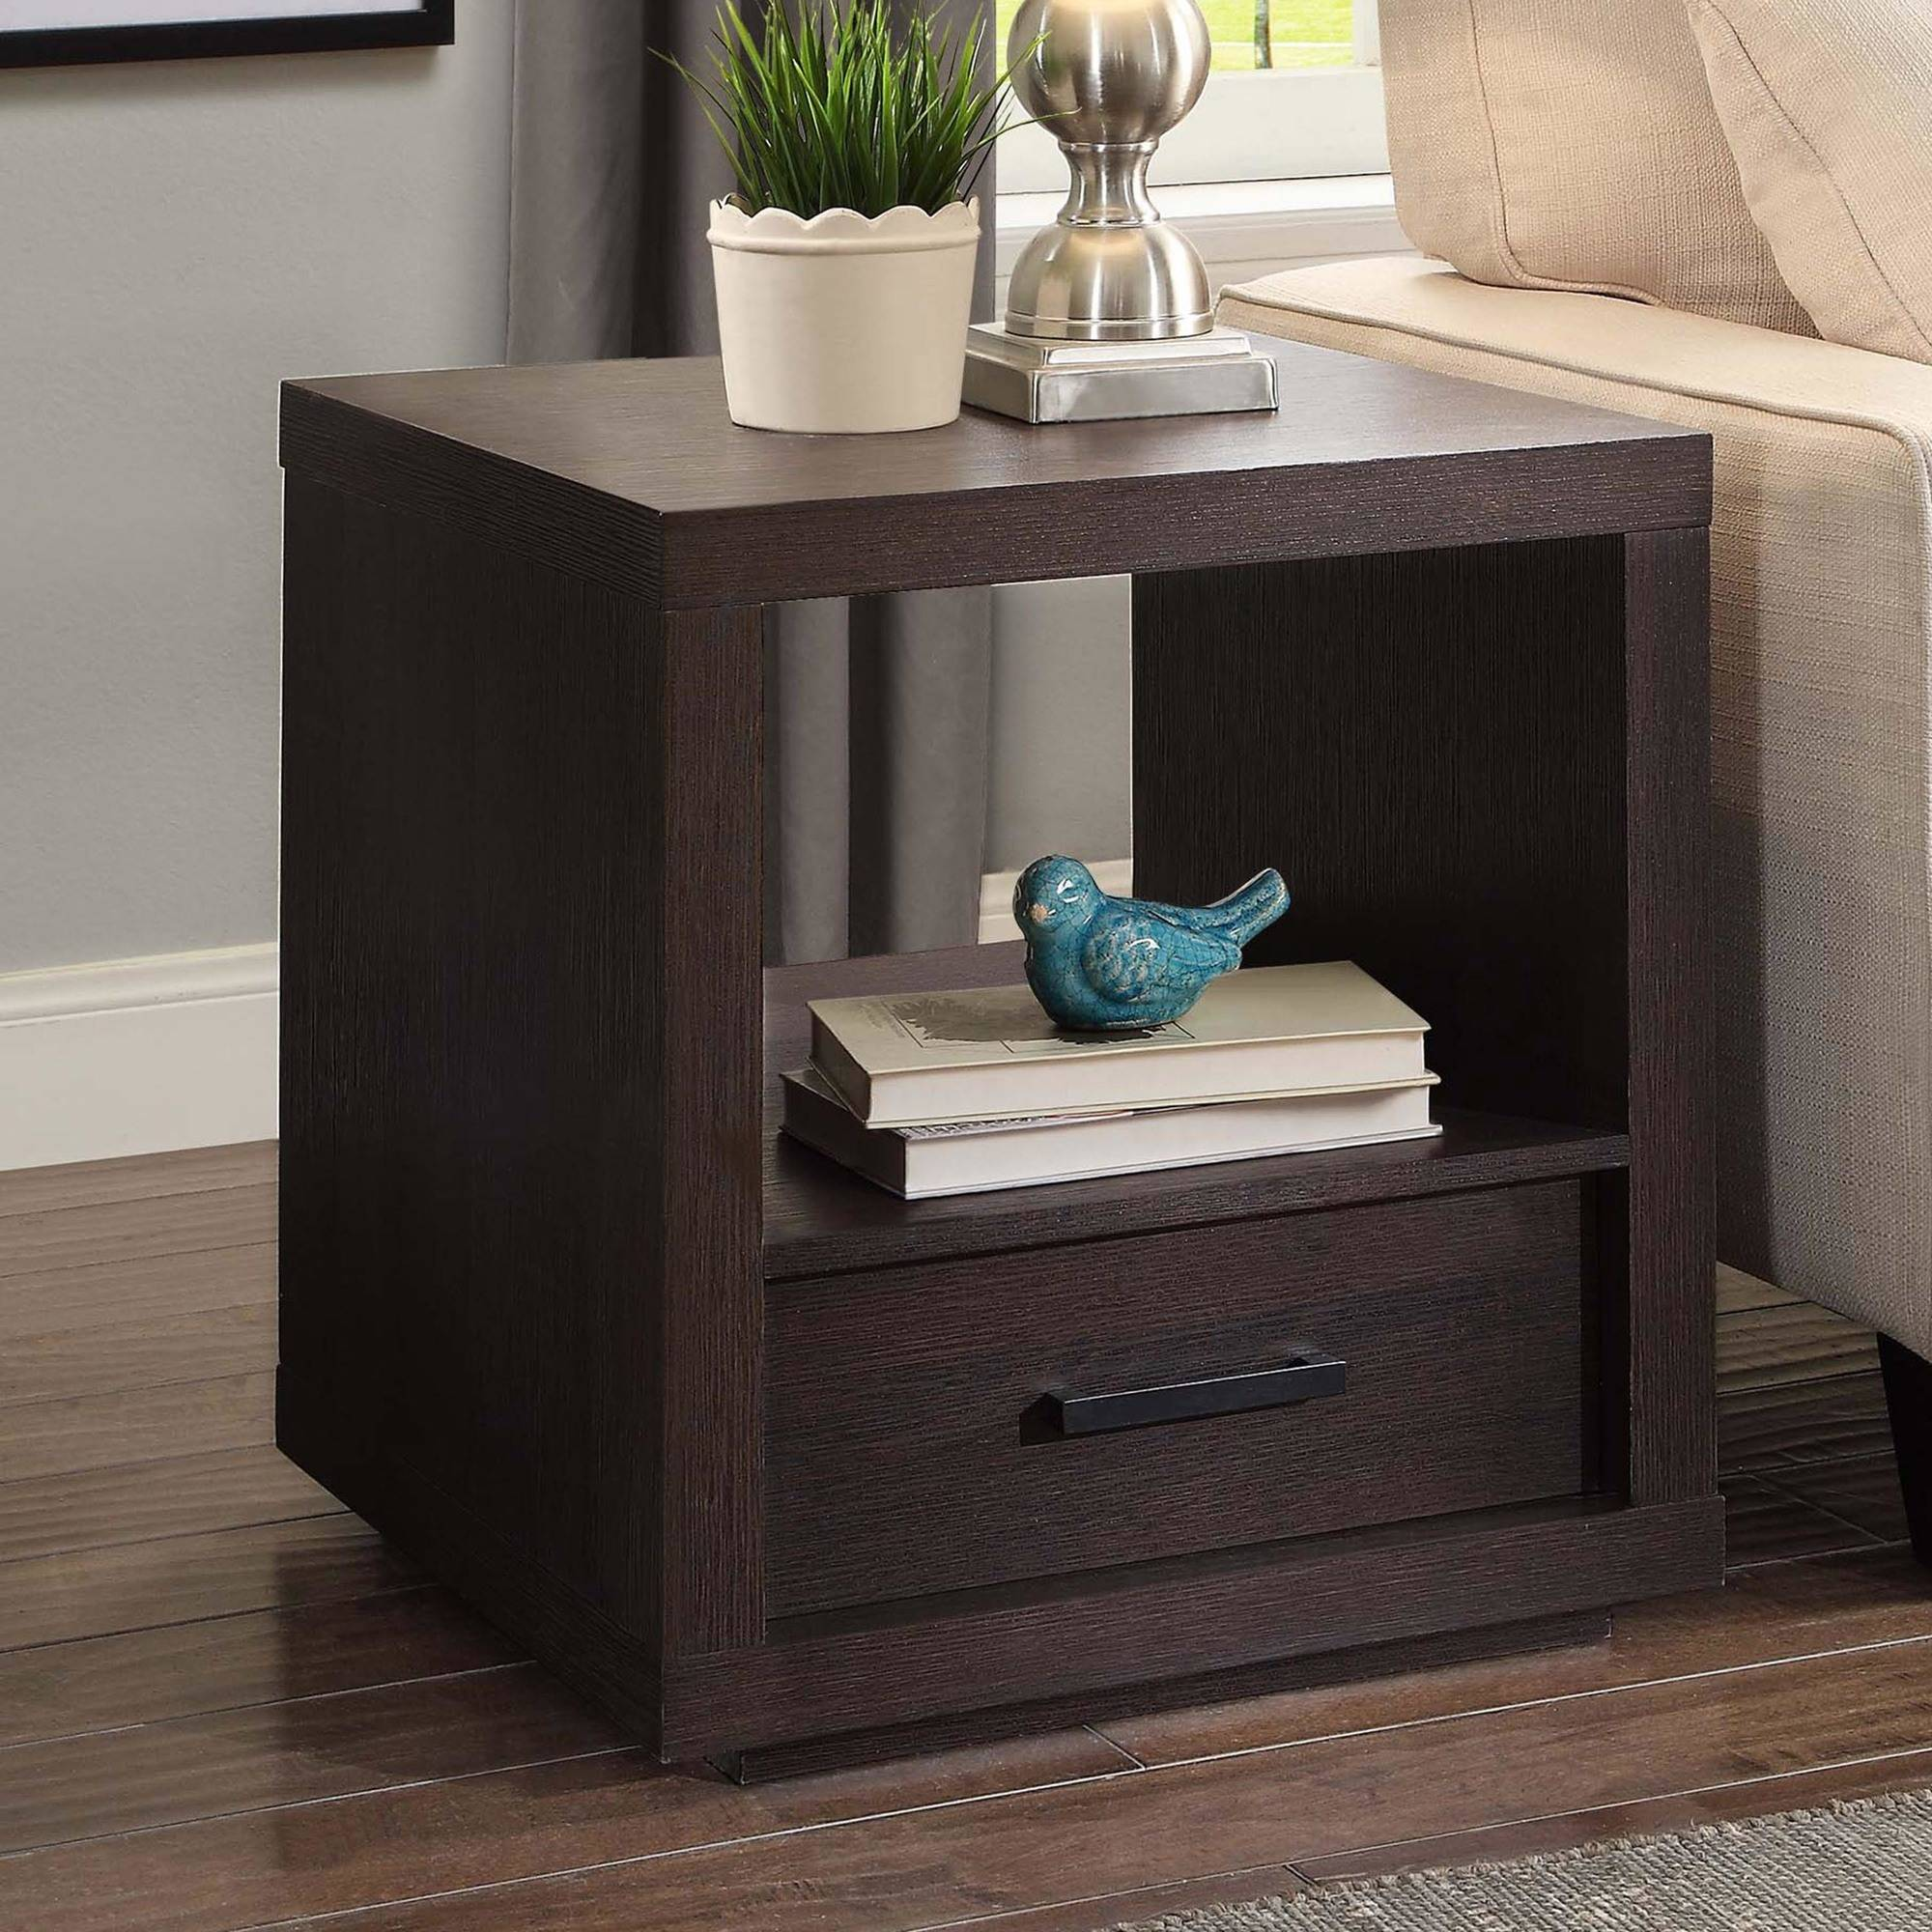 Better Homes & Gardens Steele End Table With Drawer, Espresso Finish